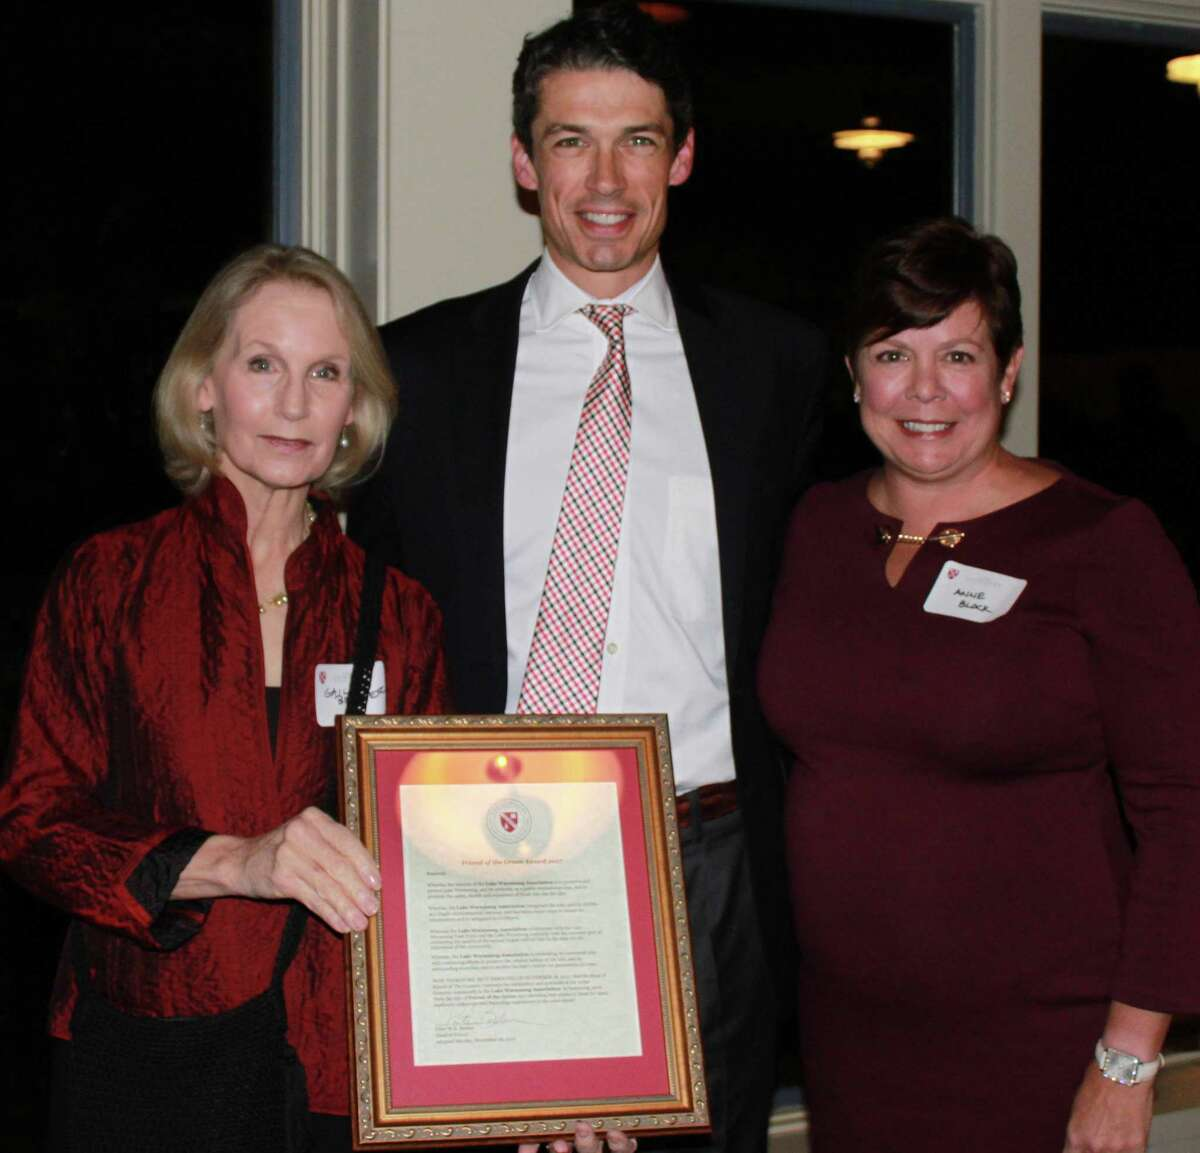 The Gunnery in Washington recently hosted a town party and presented its Friend of the Green Award to the Lake Warmarug Association. Peter Becker, head of school, center, presented the award to association co-presidents Gail Berner, left, and Anne Block.